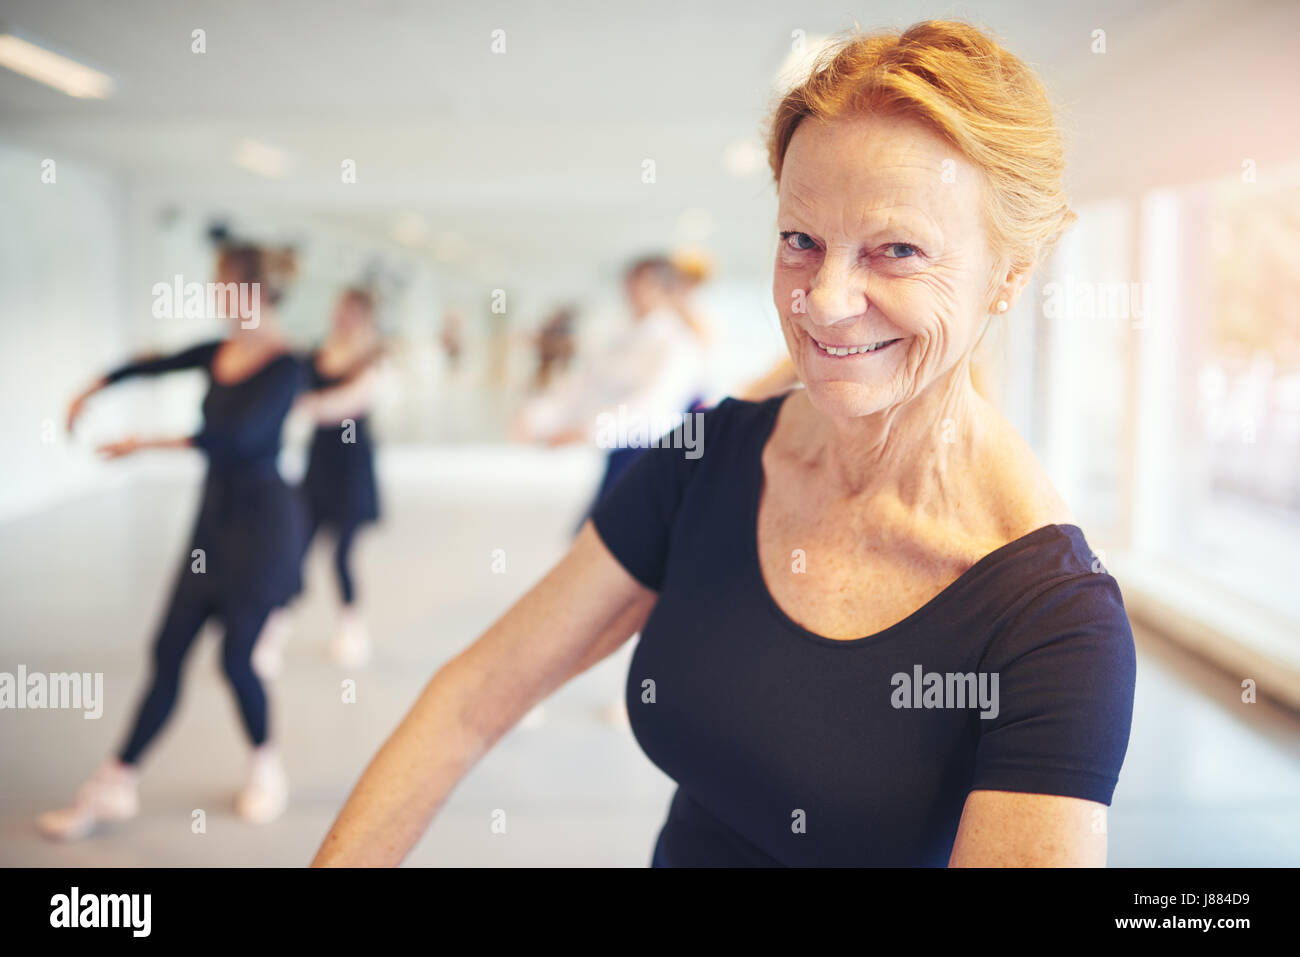 Young woman smiling and looking at camera while performing ballet dans la classe. Banque D'Images